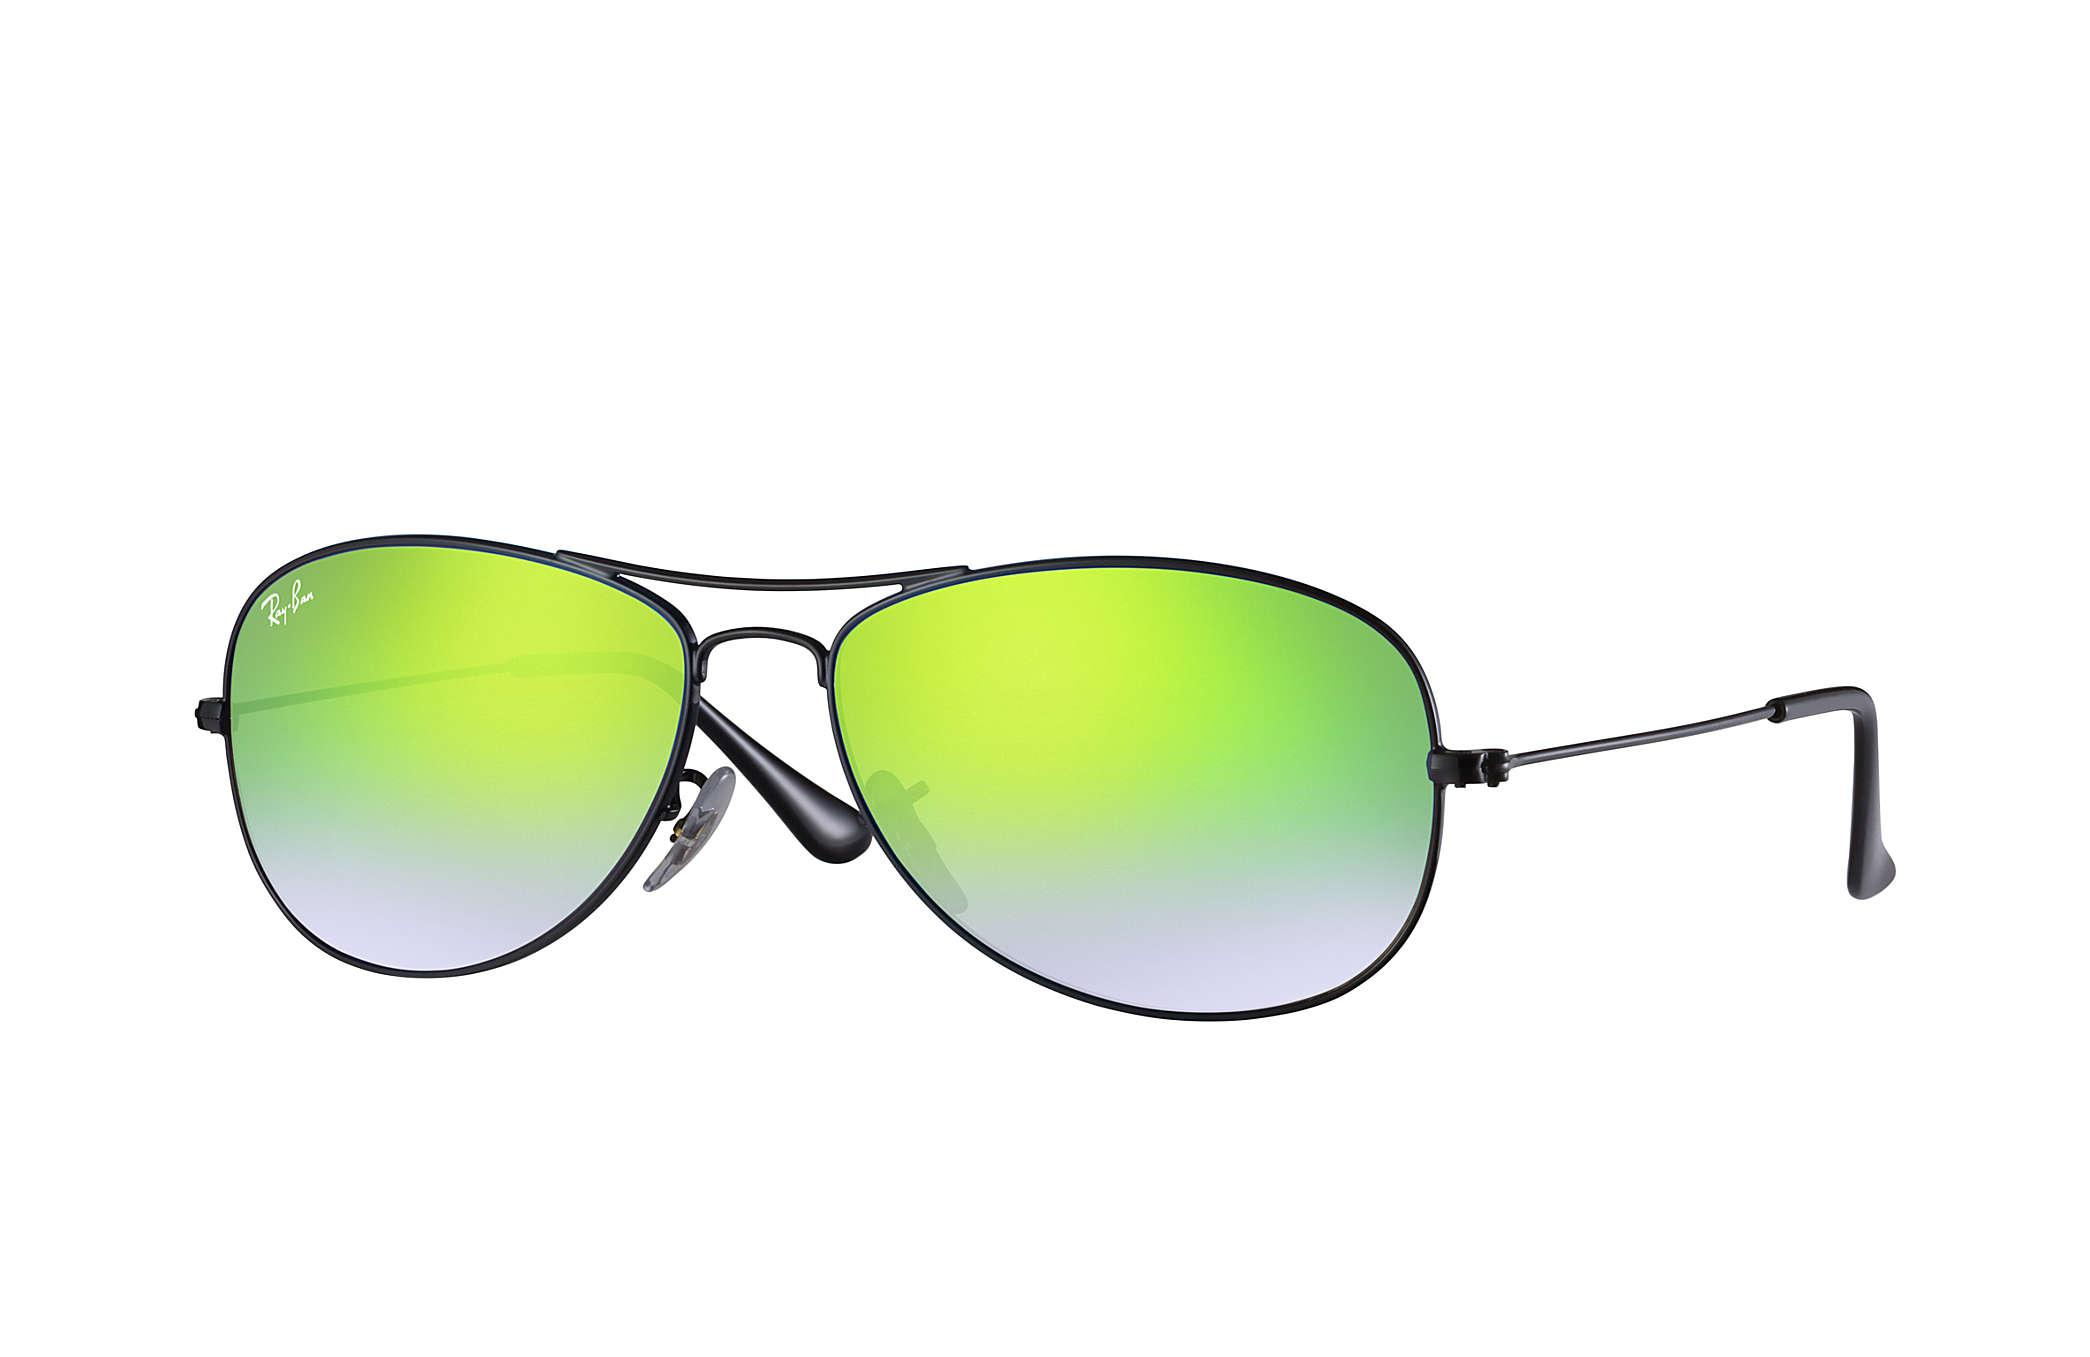 4ced6f782a Lyst - Ray-Ban Cockpit Flash Lenses Gradient in Green for Men